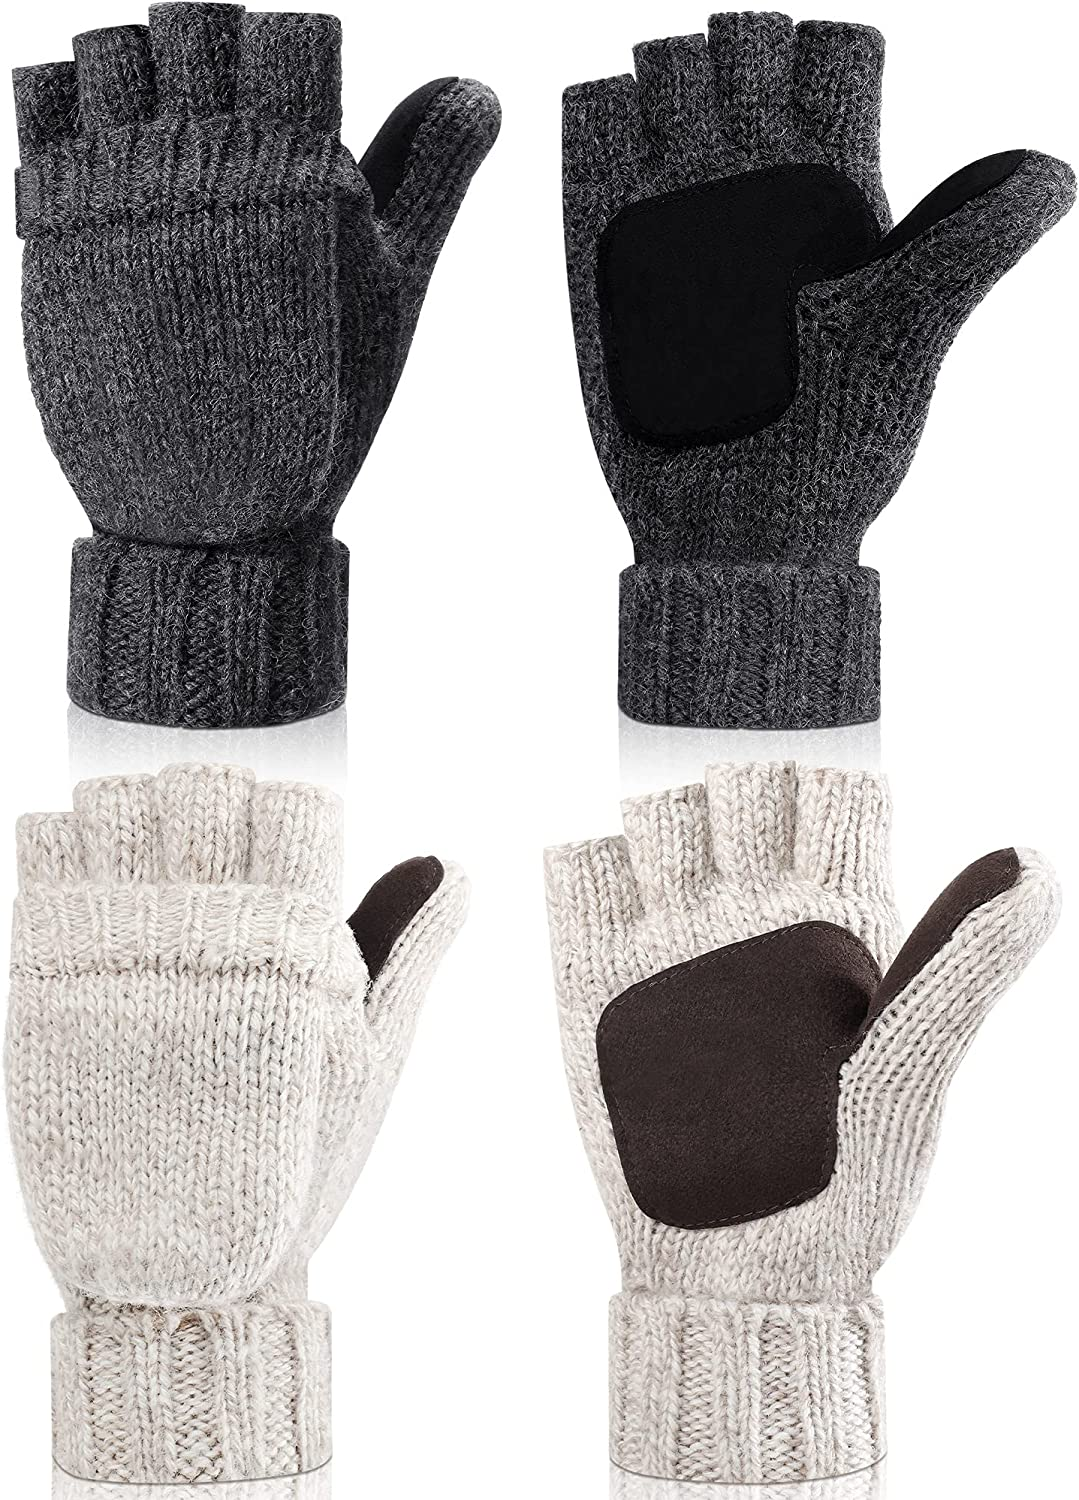 2 Pairs Winter Mittens Warm Wool Gloves With Finger Hole Cold Weather Lightweight Fingerless Thermal Gloves for Women Men